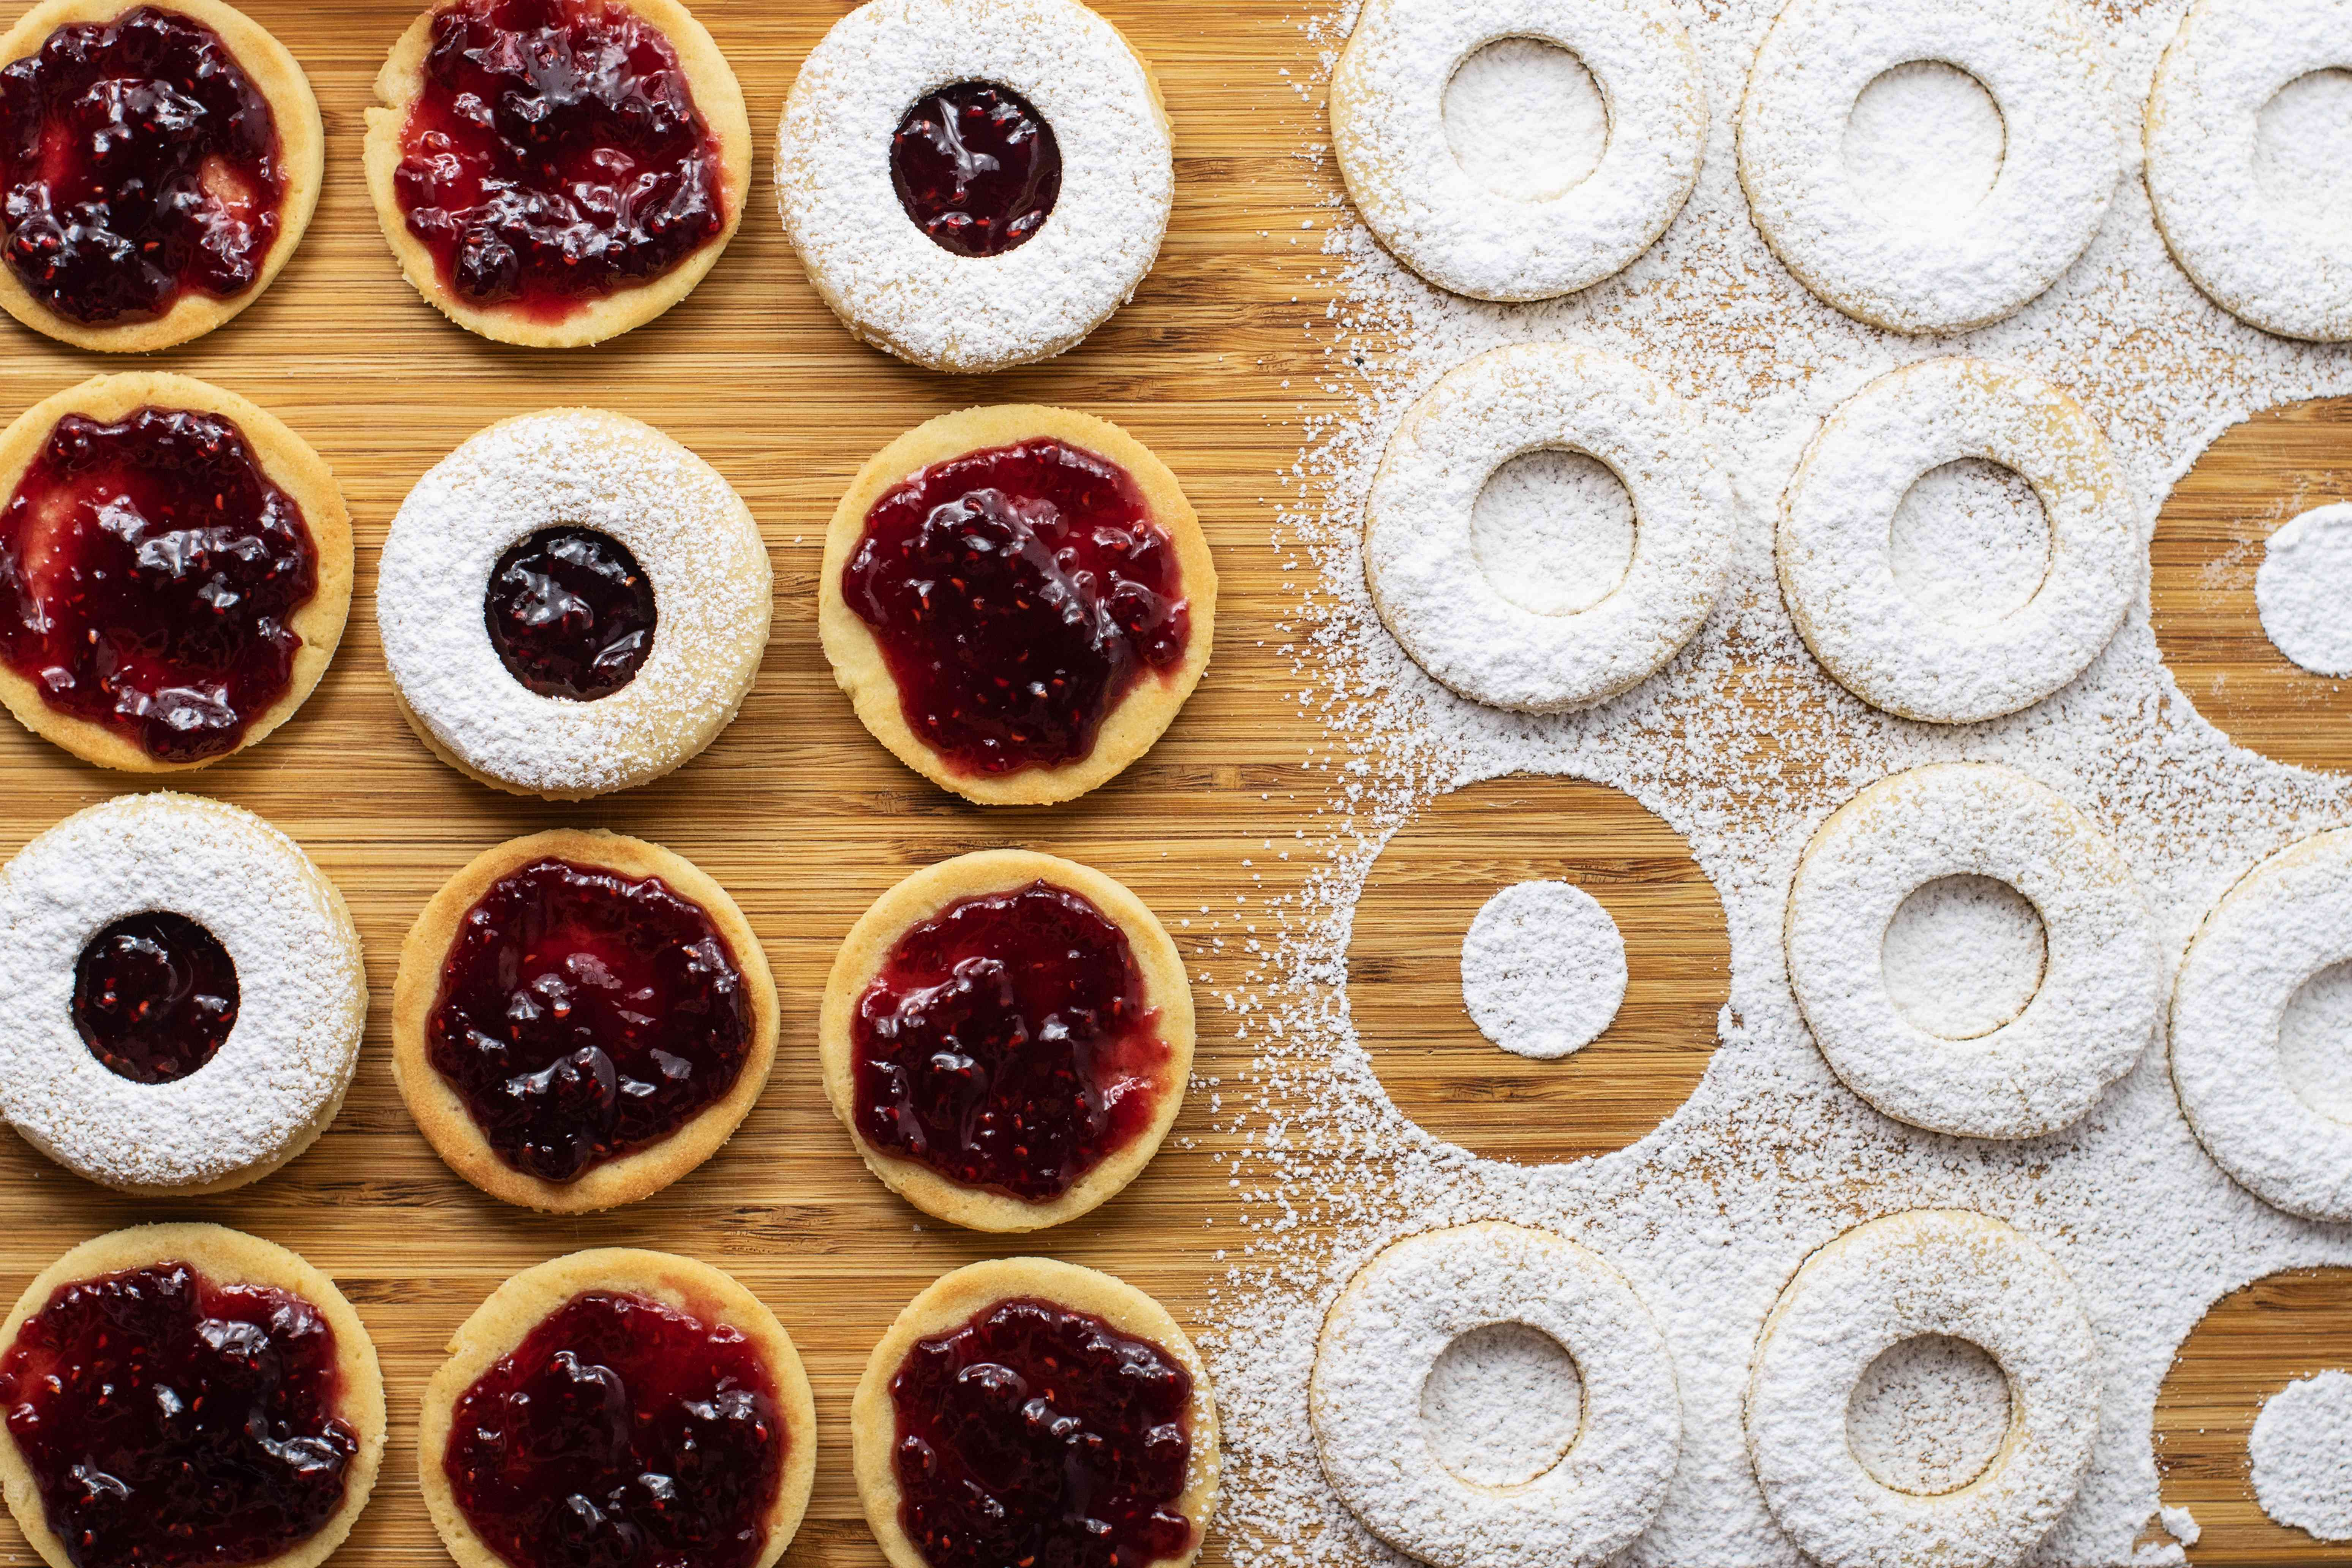 Jam filled maslenki cookies and tops dusted with confectioners' sugar